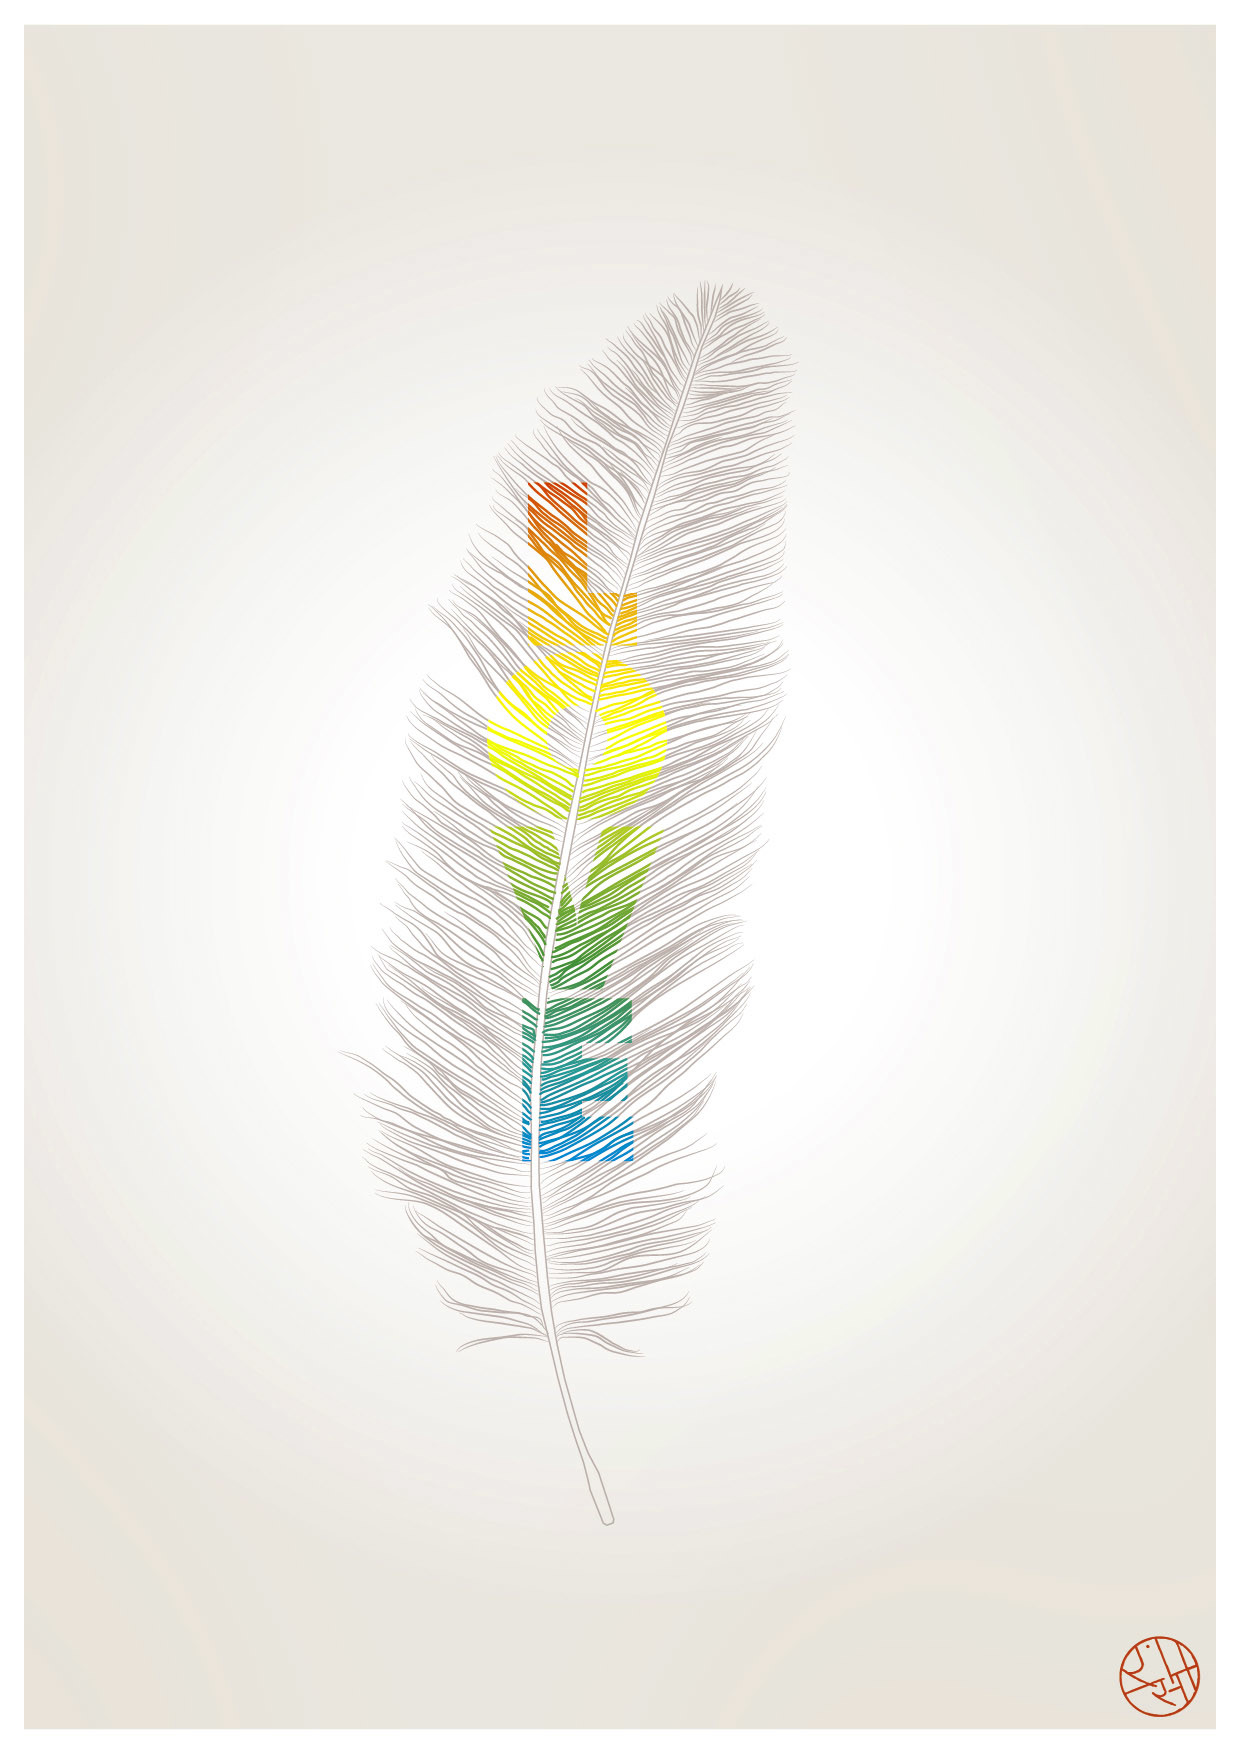 Rajesh sawant feather love2 01